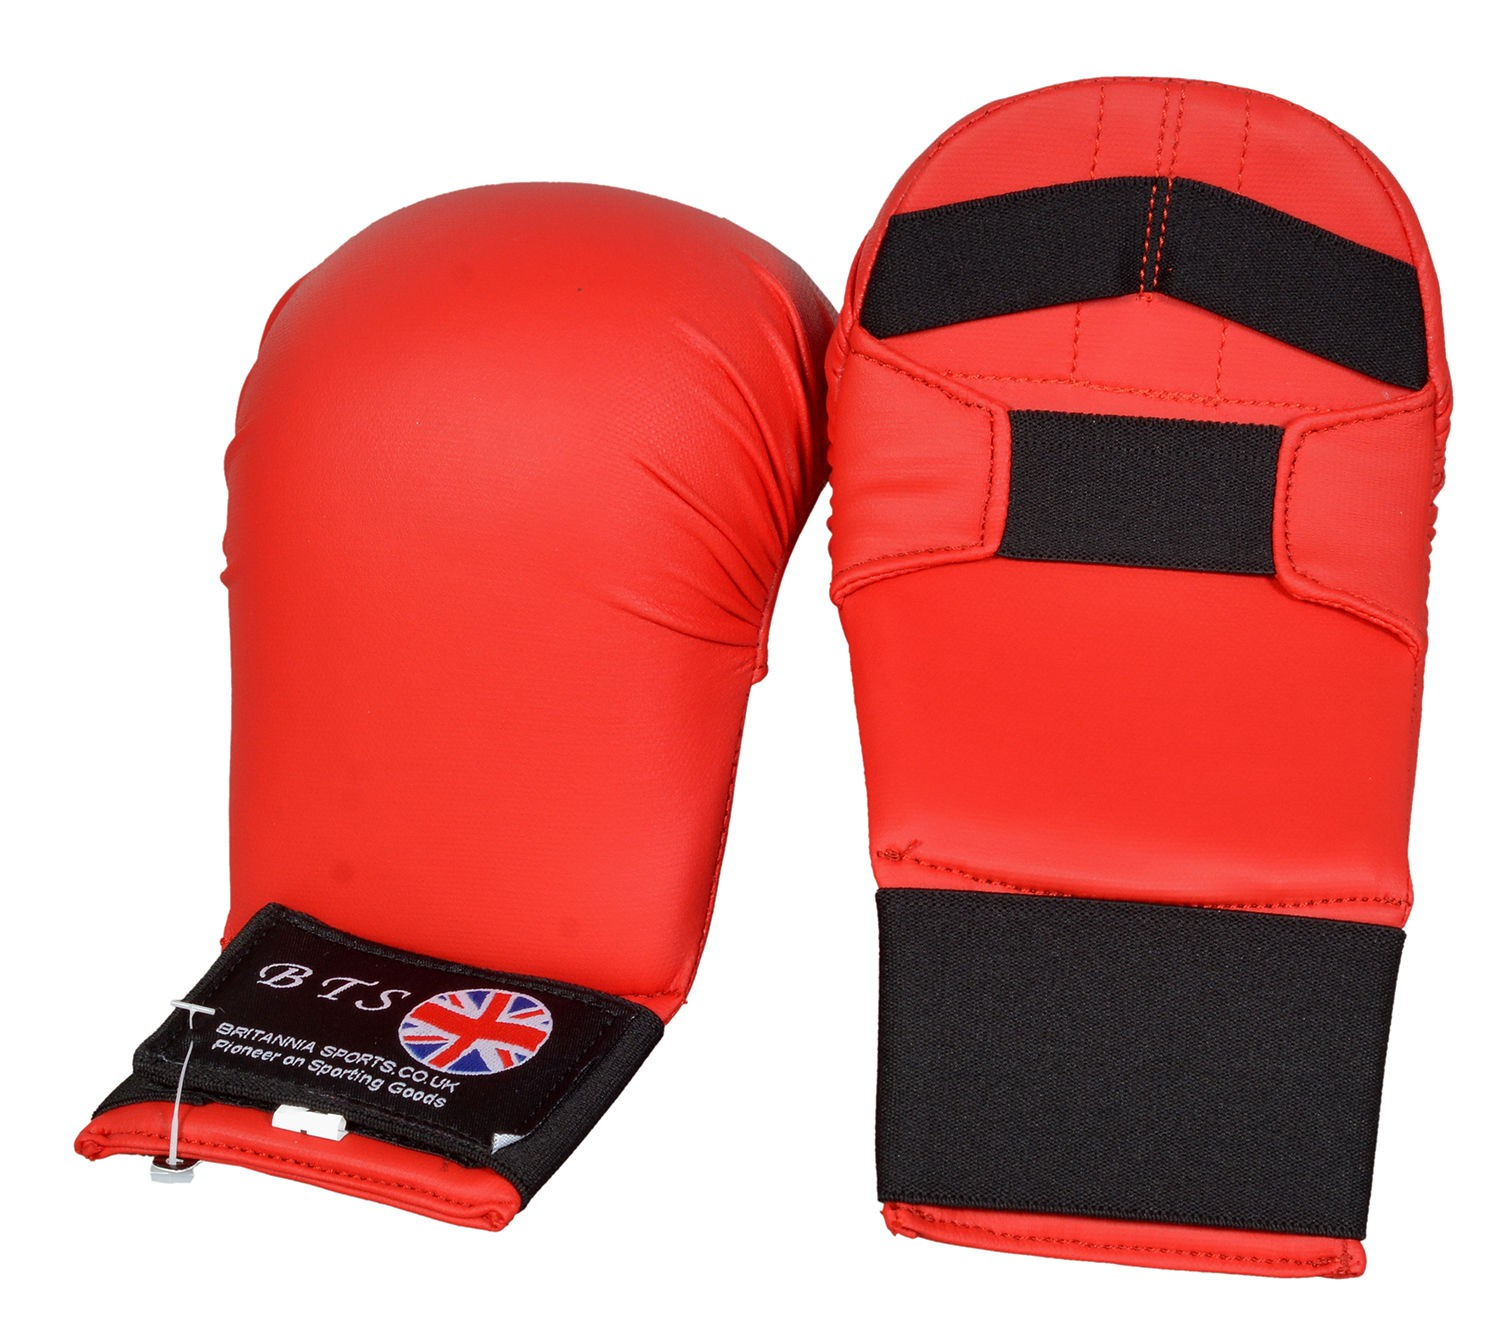 RAX Karate Mitts Sparring Gloves KM101